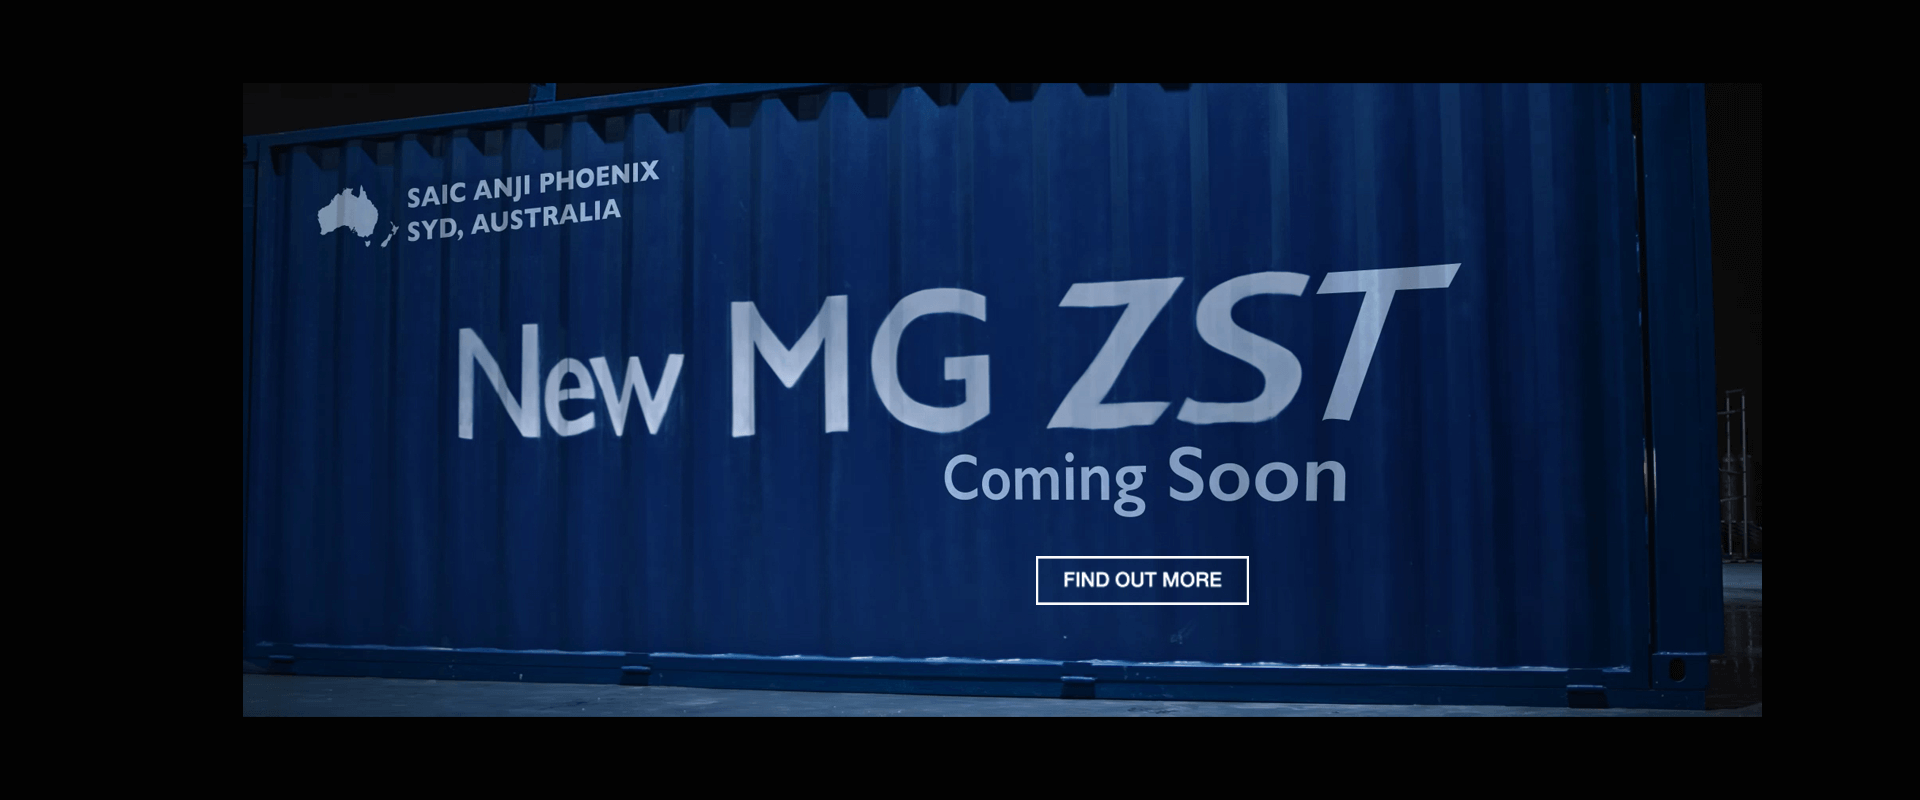 The all new MG ZST